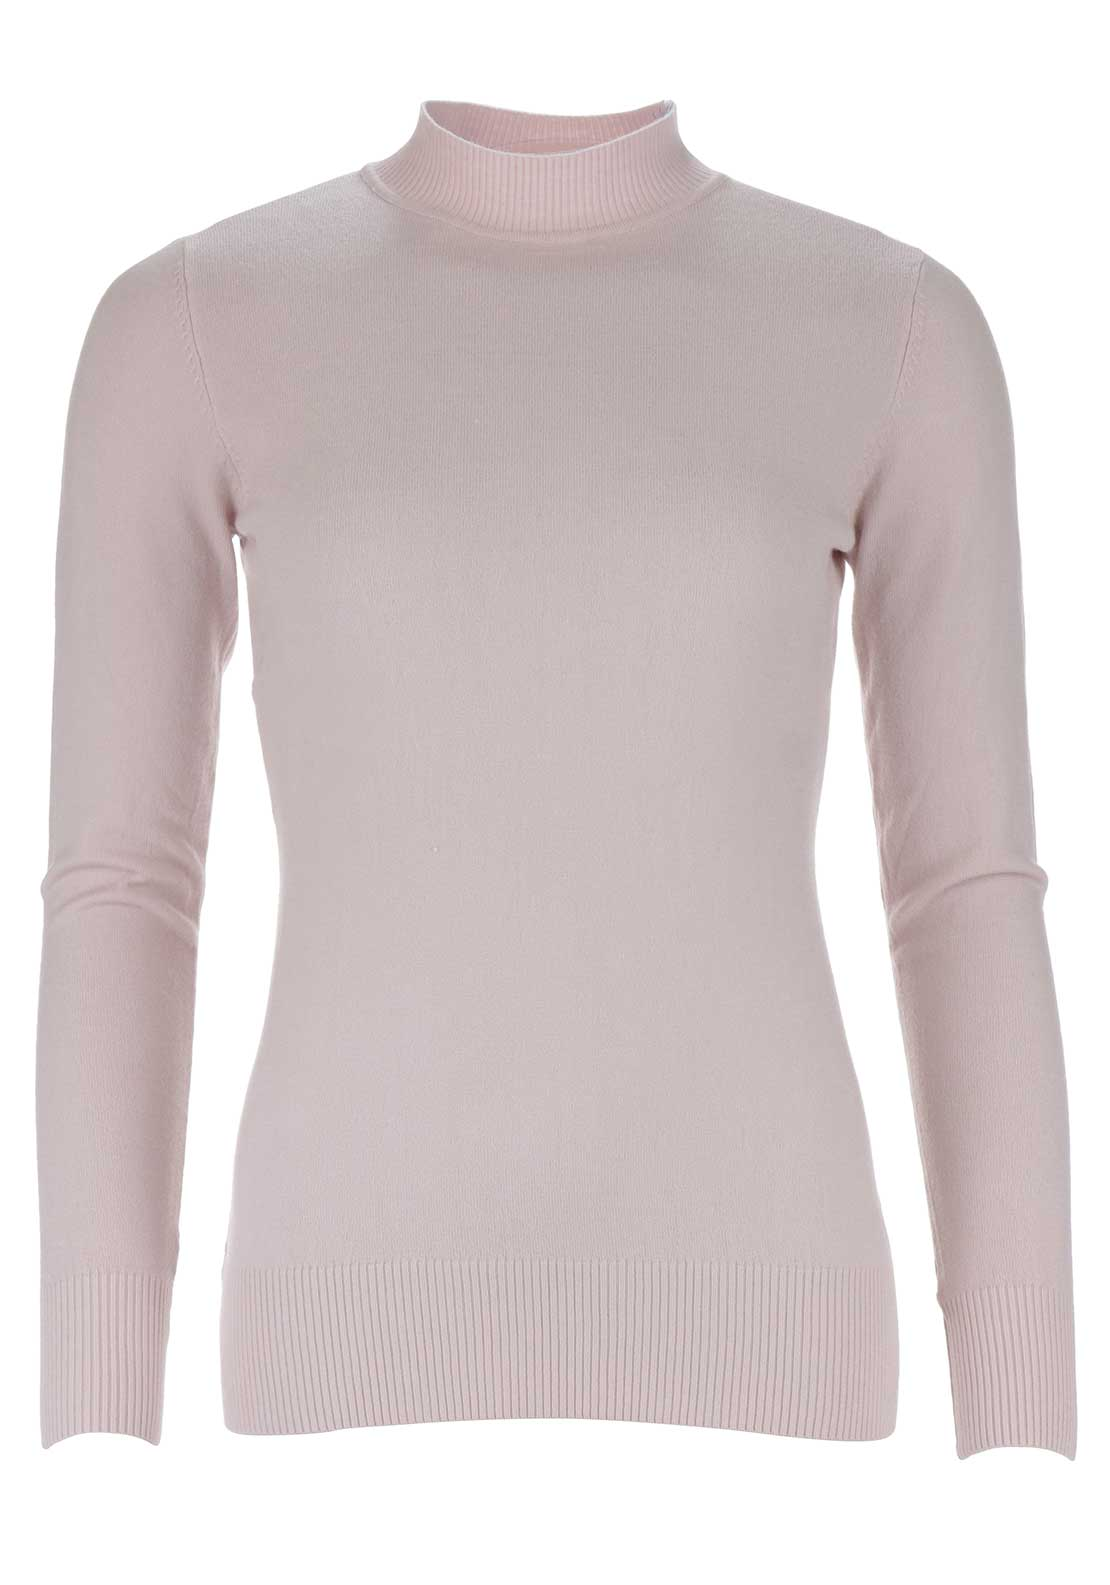 d.e.c.k. by Decollage High Neck Jumper, Pink